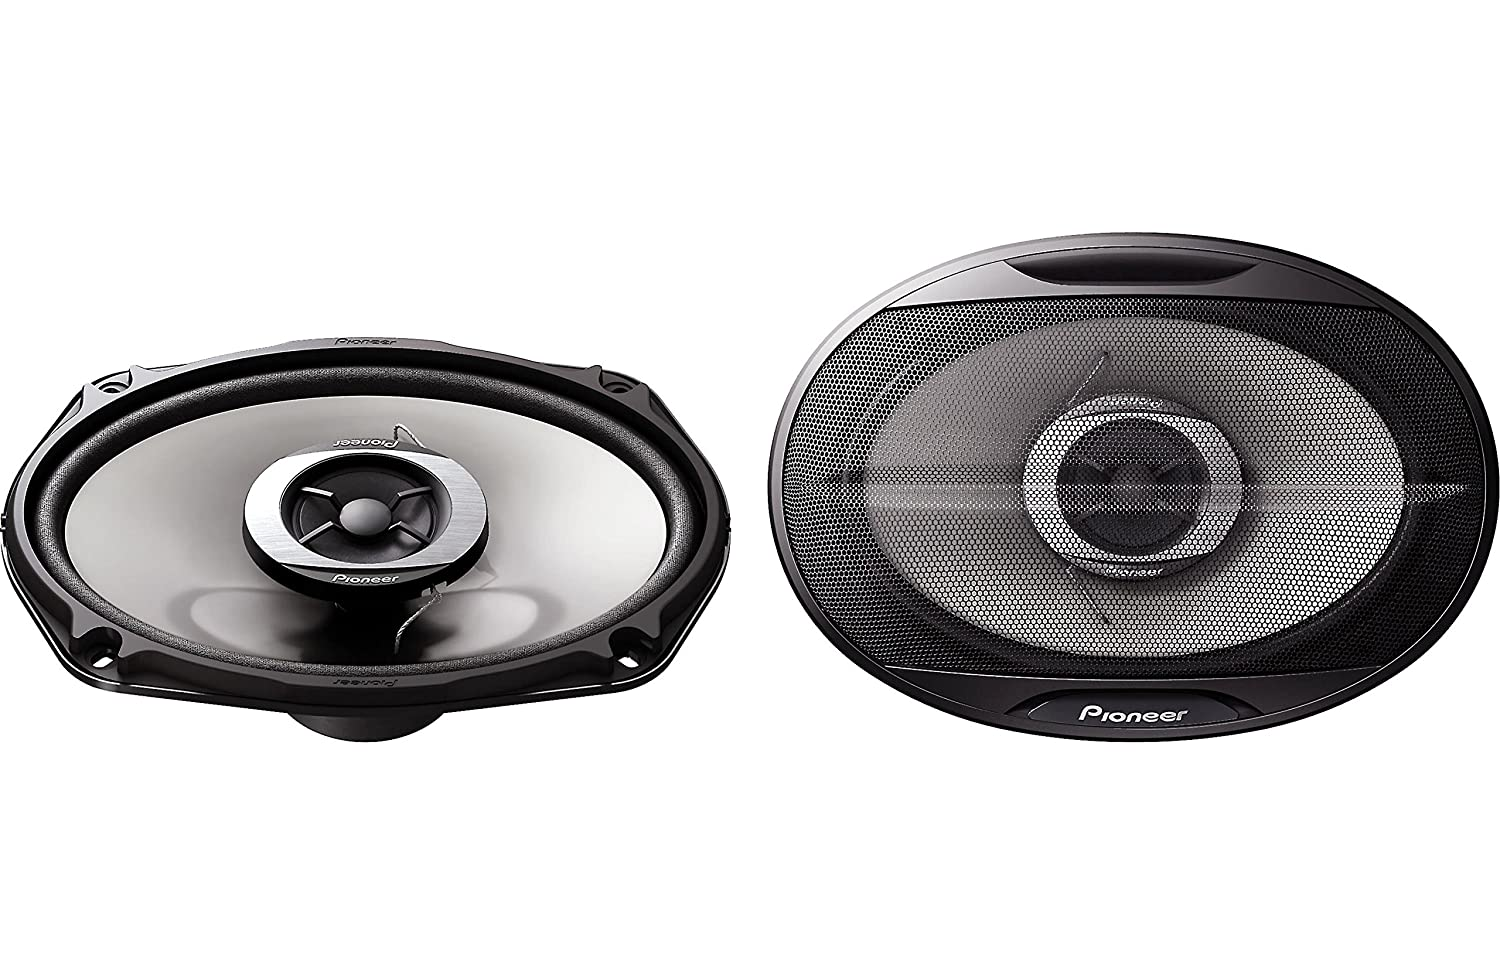 Pioneer Ts G6943r 2 Way Speaker With 250 Watts Max Power 6 X 9 F1634r Coaxial 2way Cell Phones Accessories